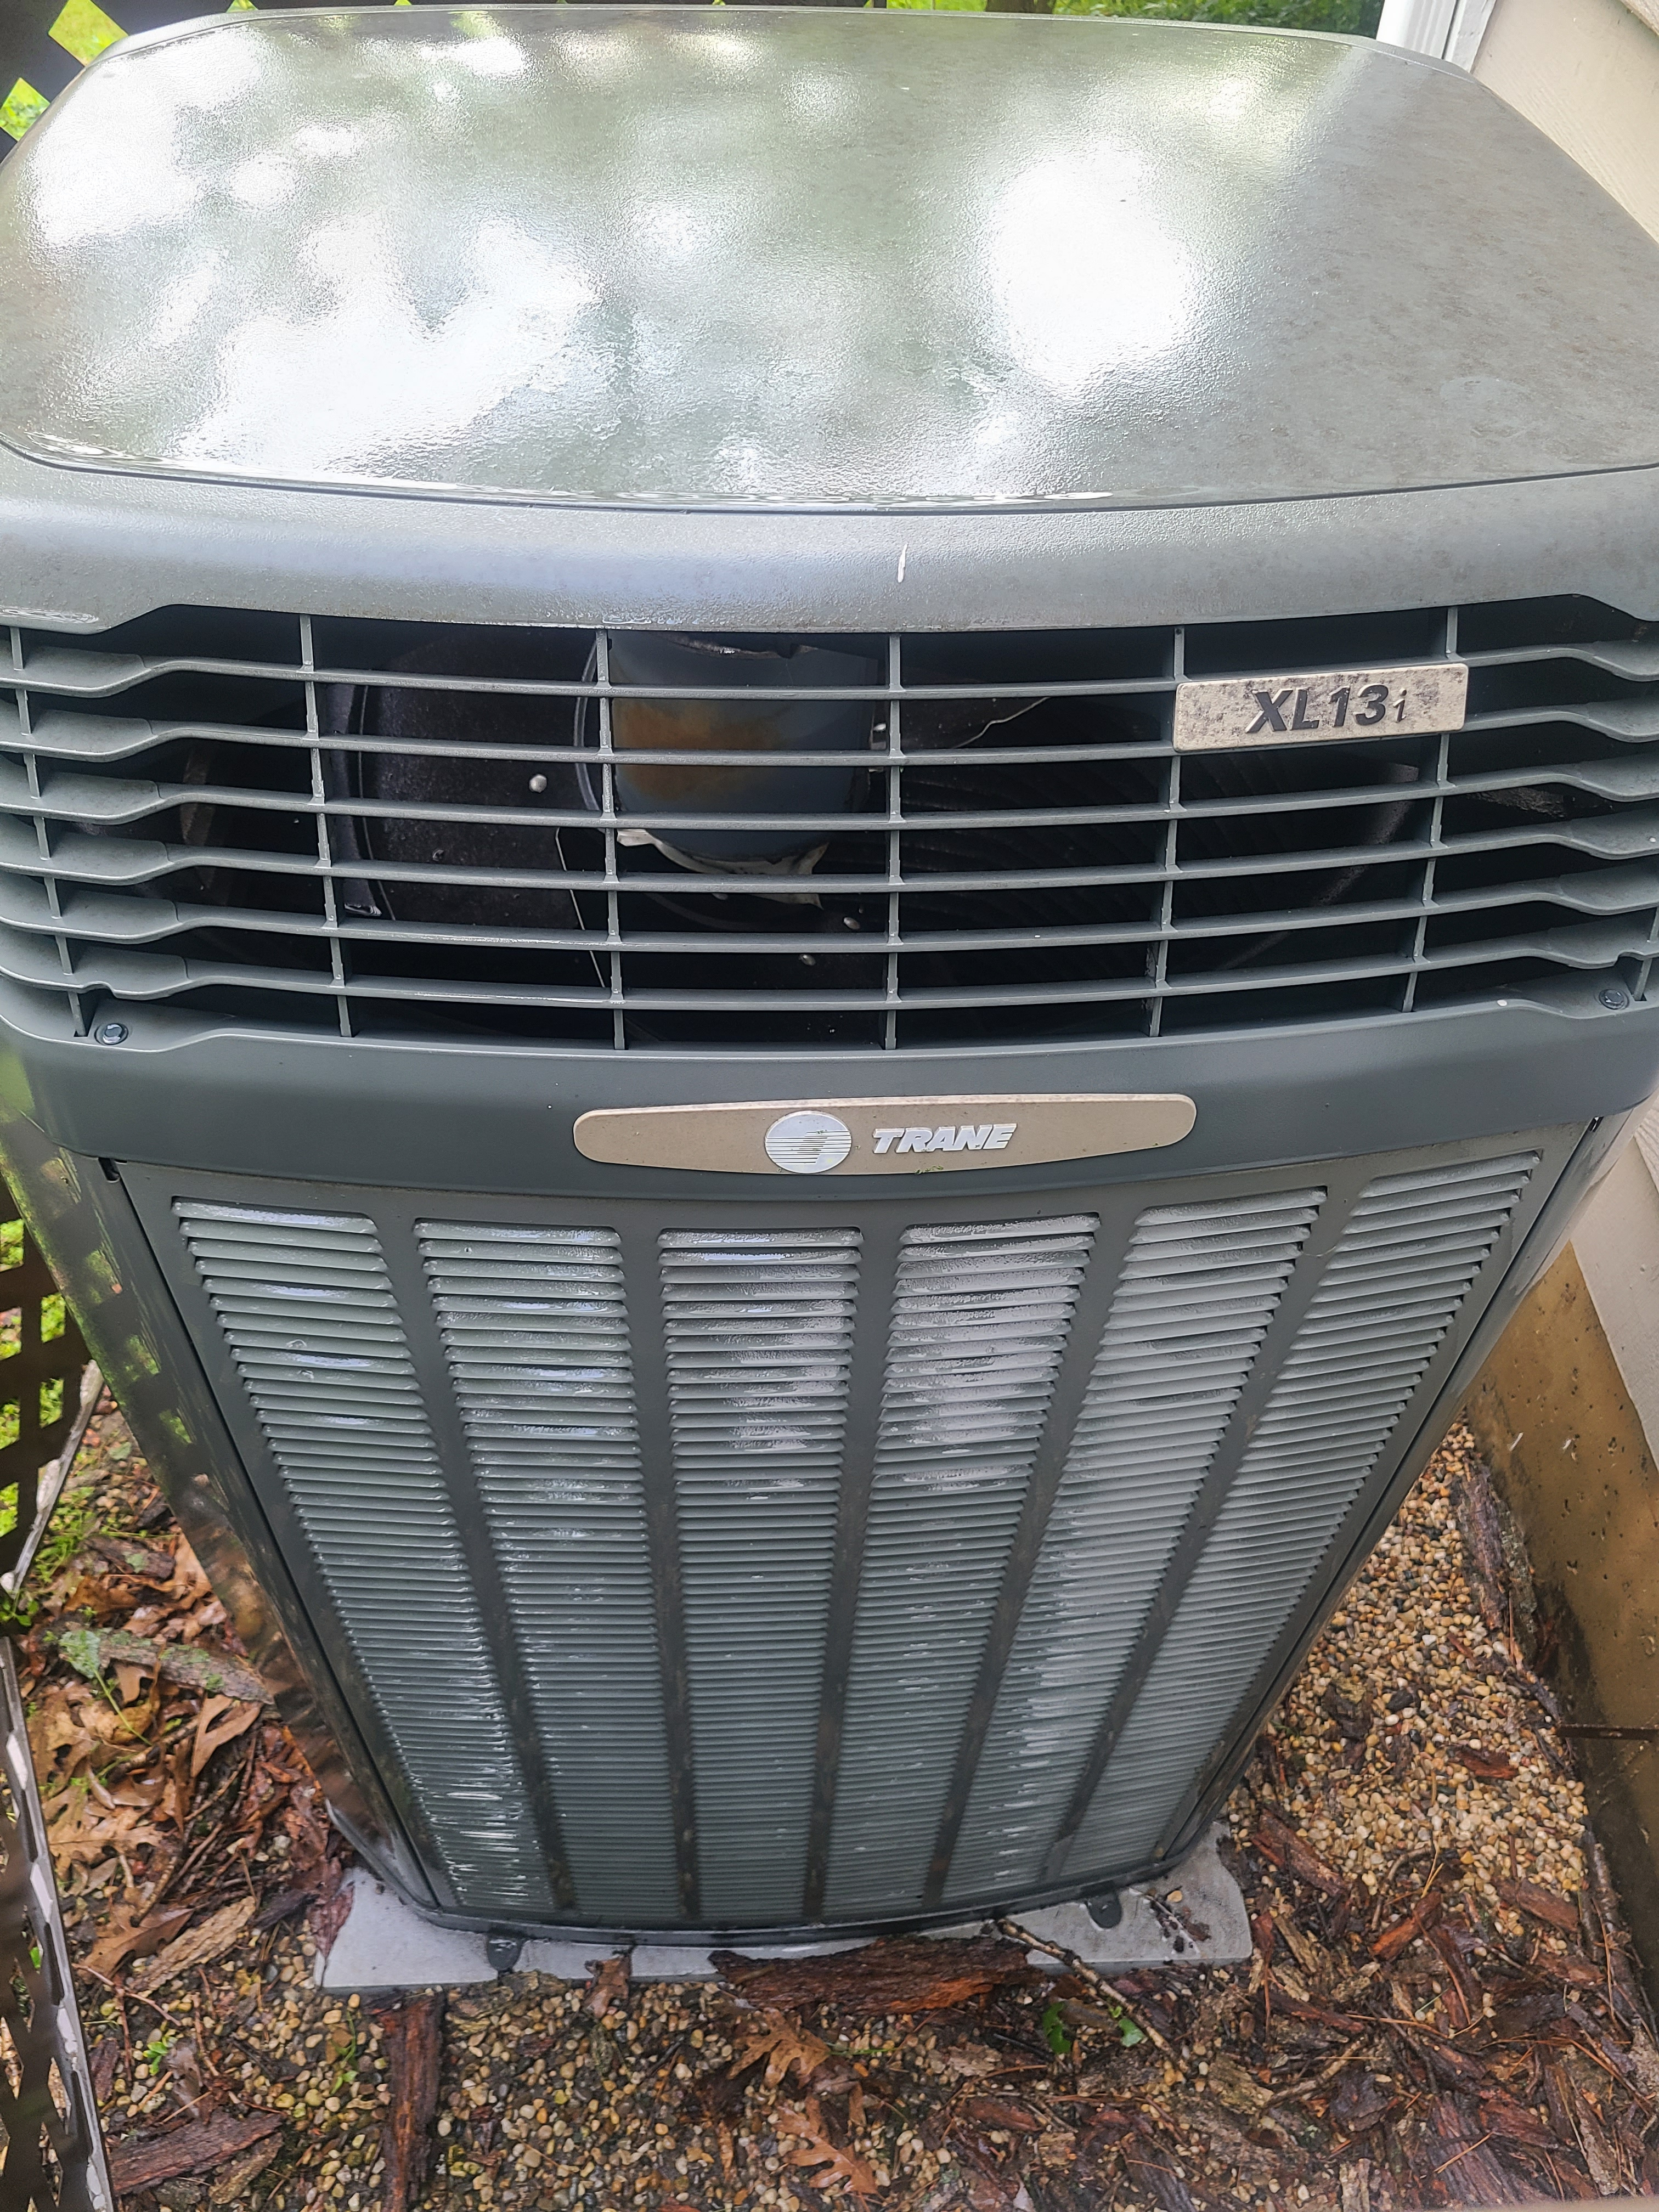 Trane air conditioning low on refrigerant, added.